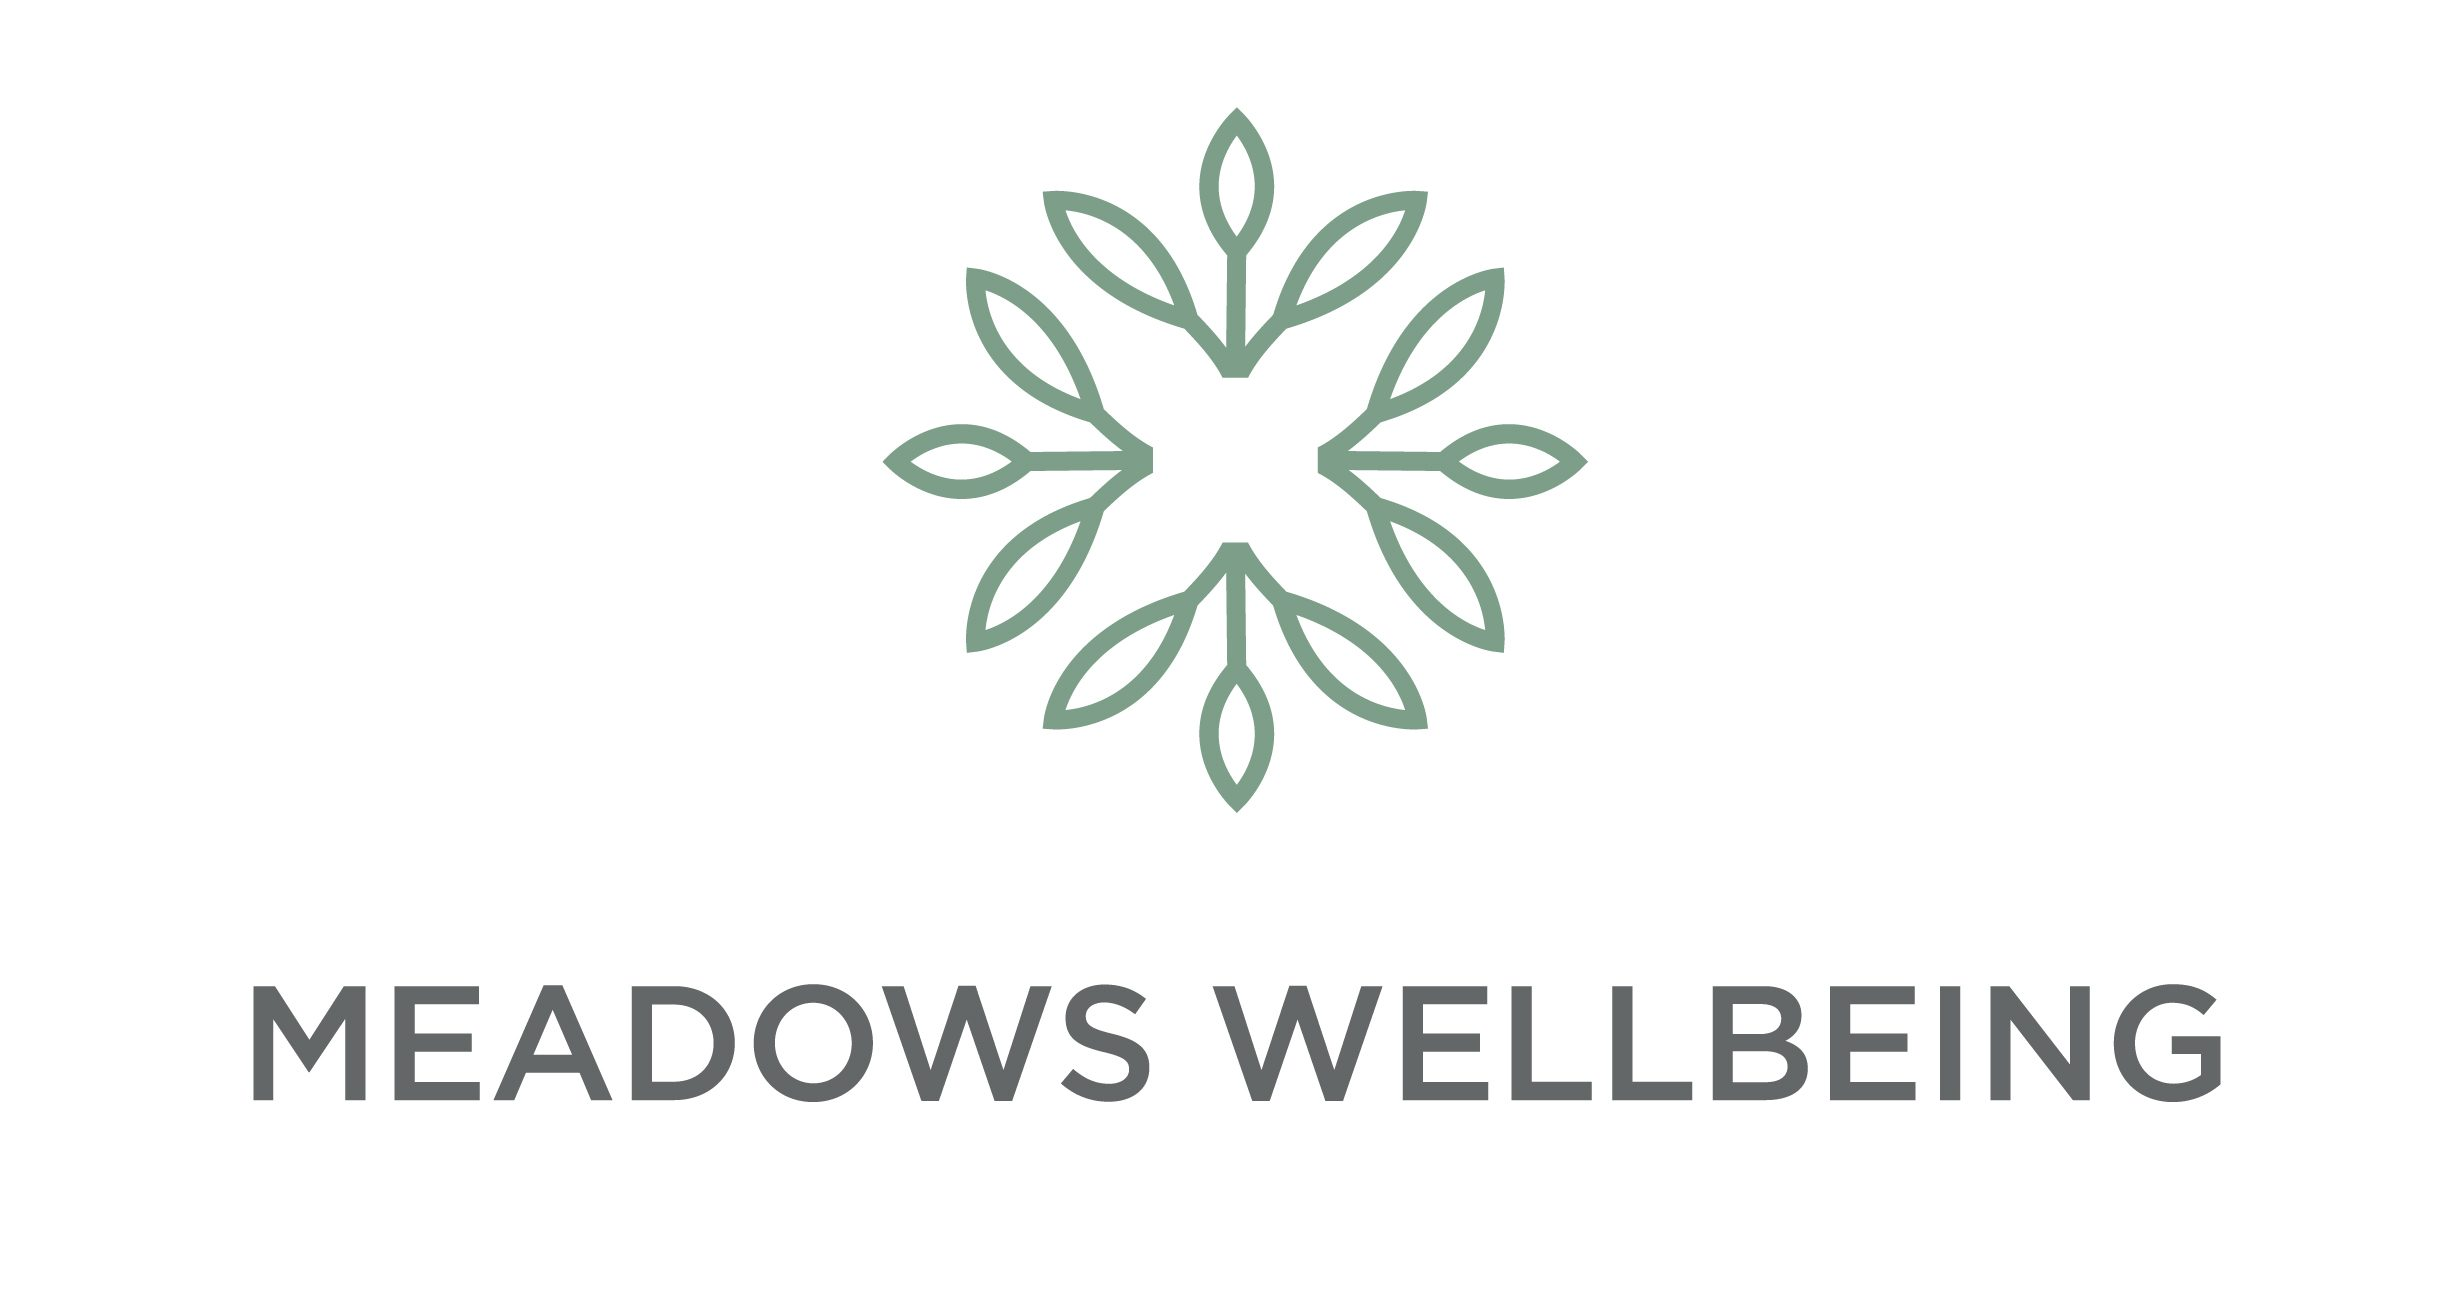 Meadows Wellbeing